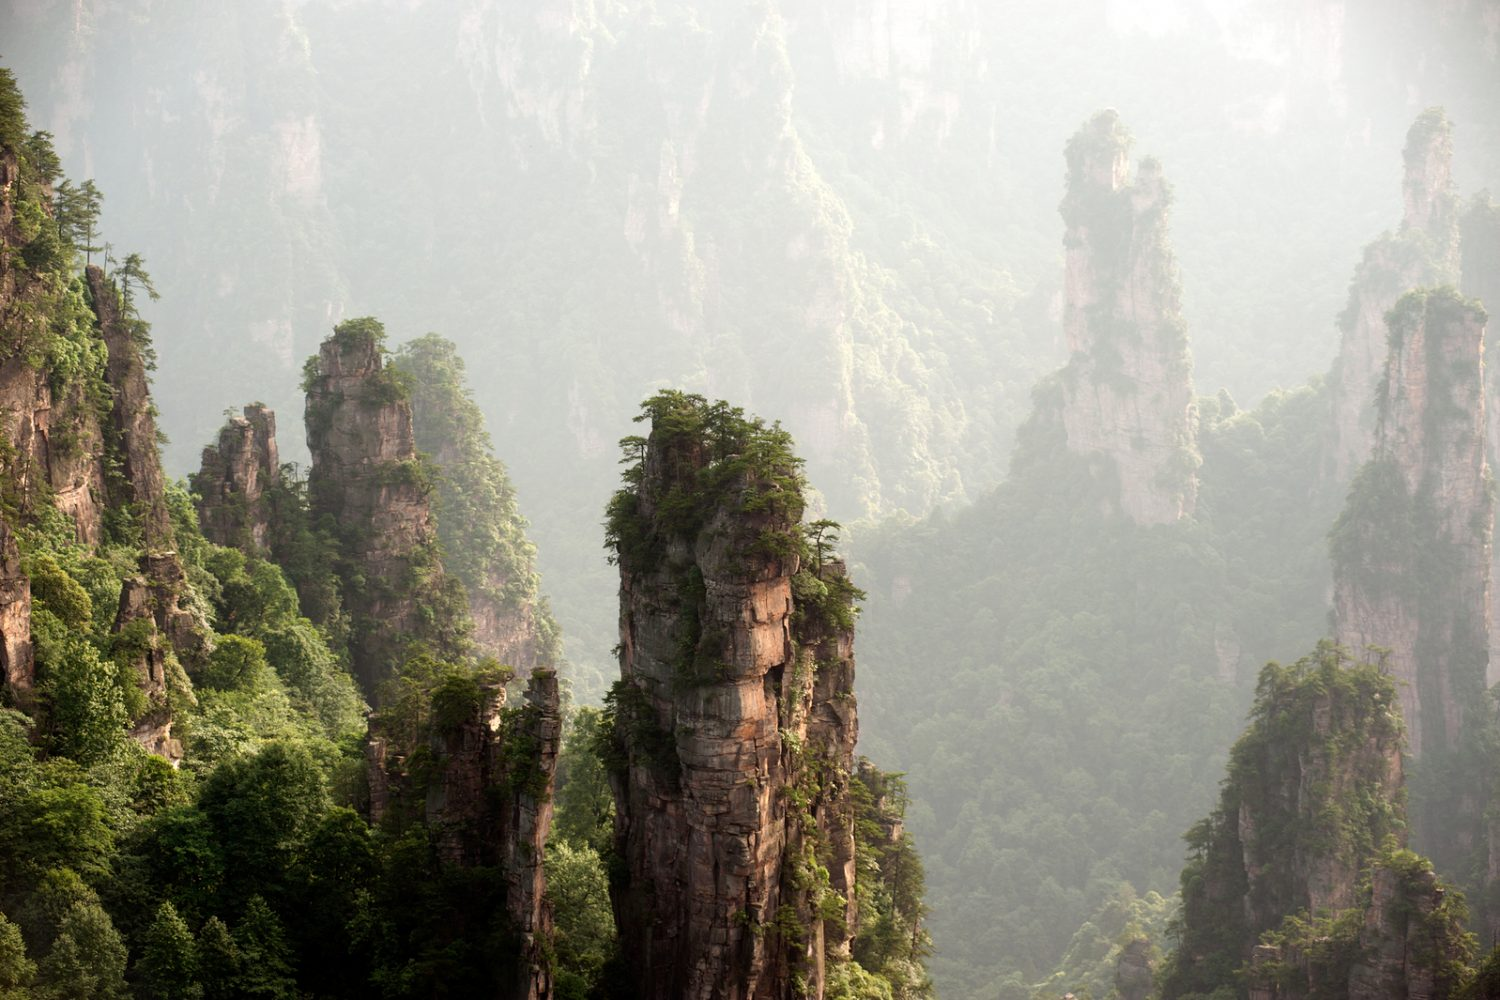 Mysterious Mountains Zhangjiajie, Hunan Province In China. - China Tour operators